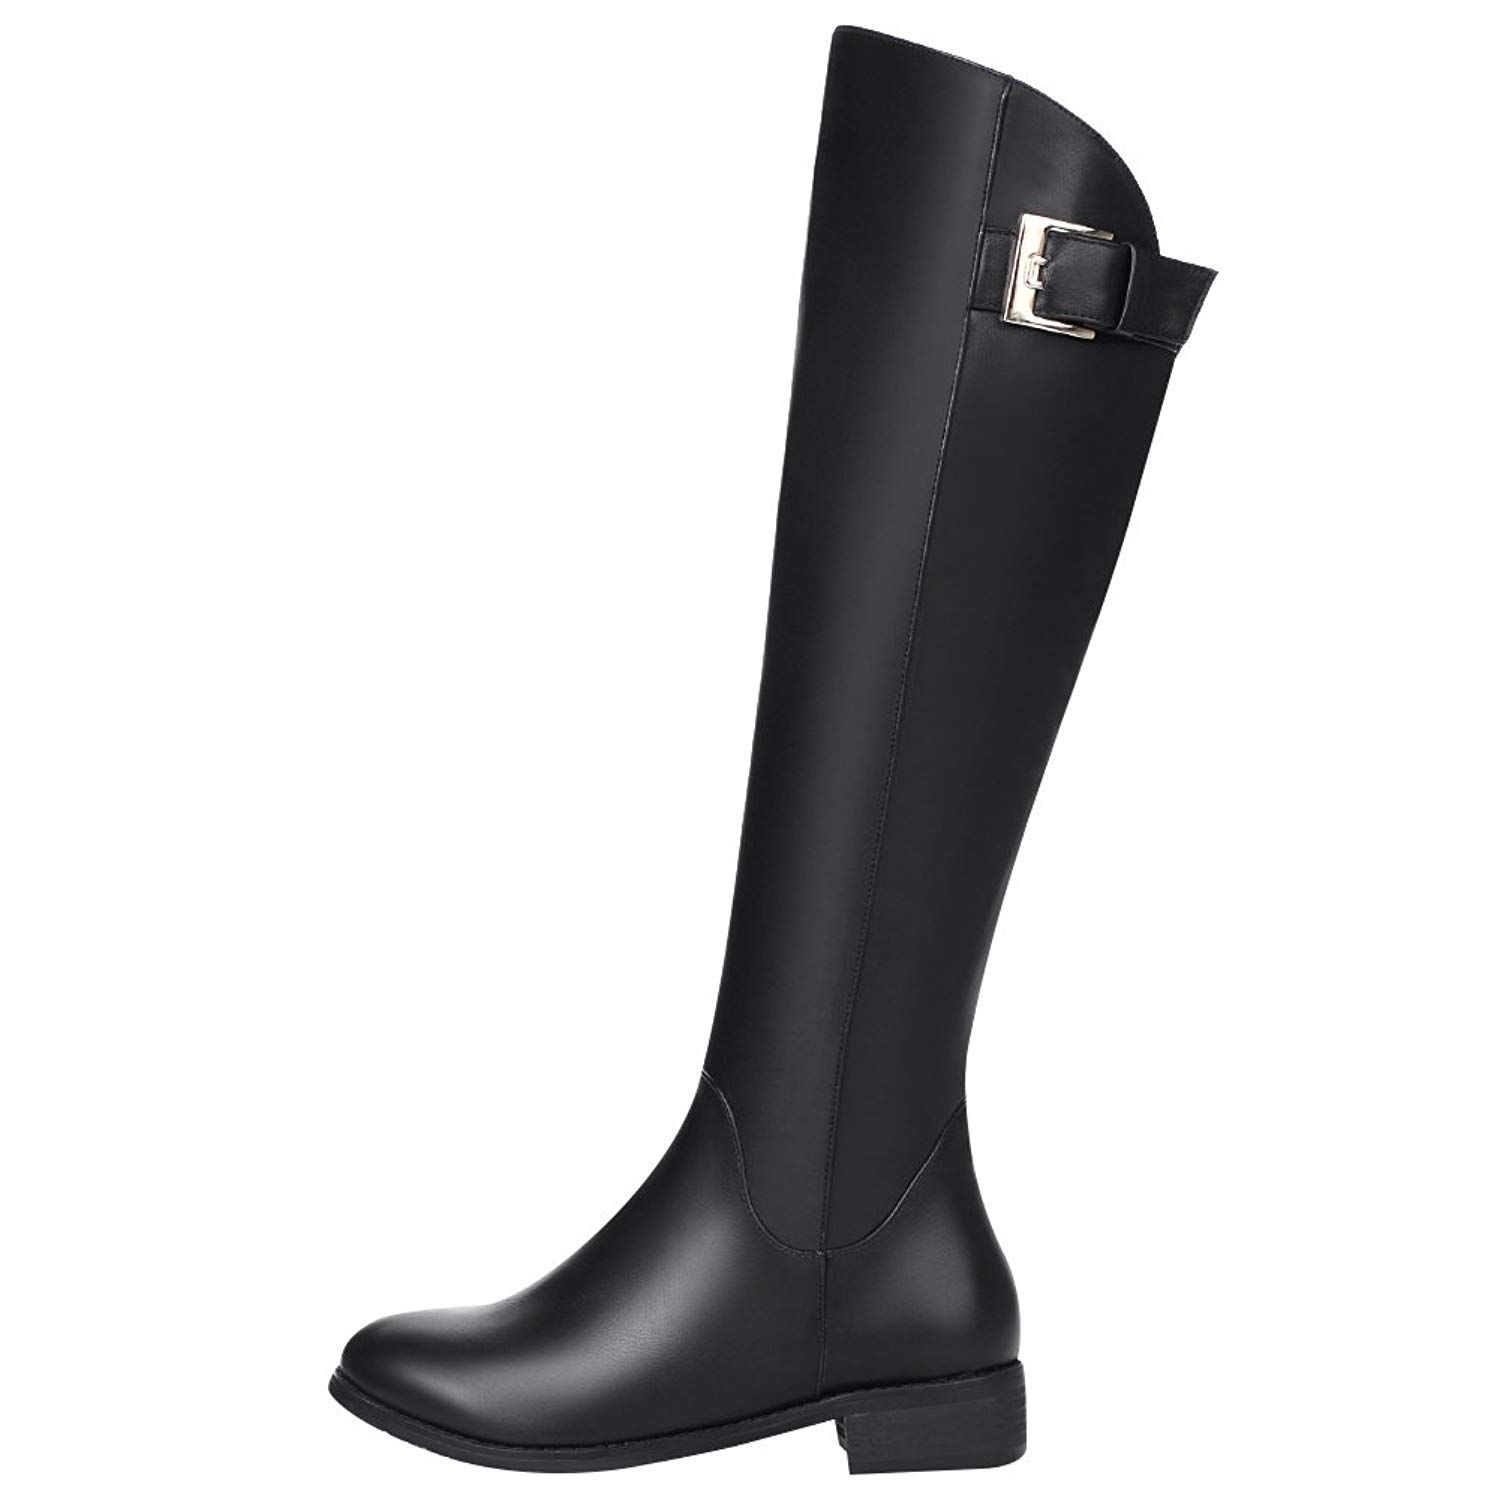 0e661b8e2d6c Jamron Women Western Trendy Horse Riding Boots Stylish Chunky Heel Knee  Boots Water-proof Leather Zip Boots     For more information